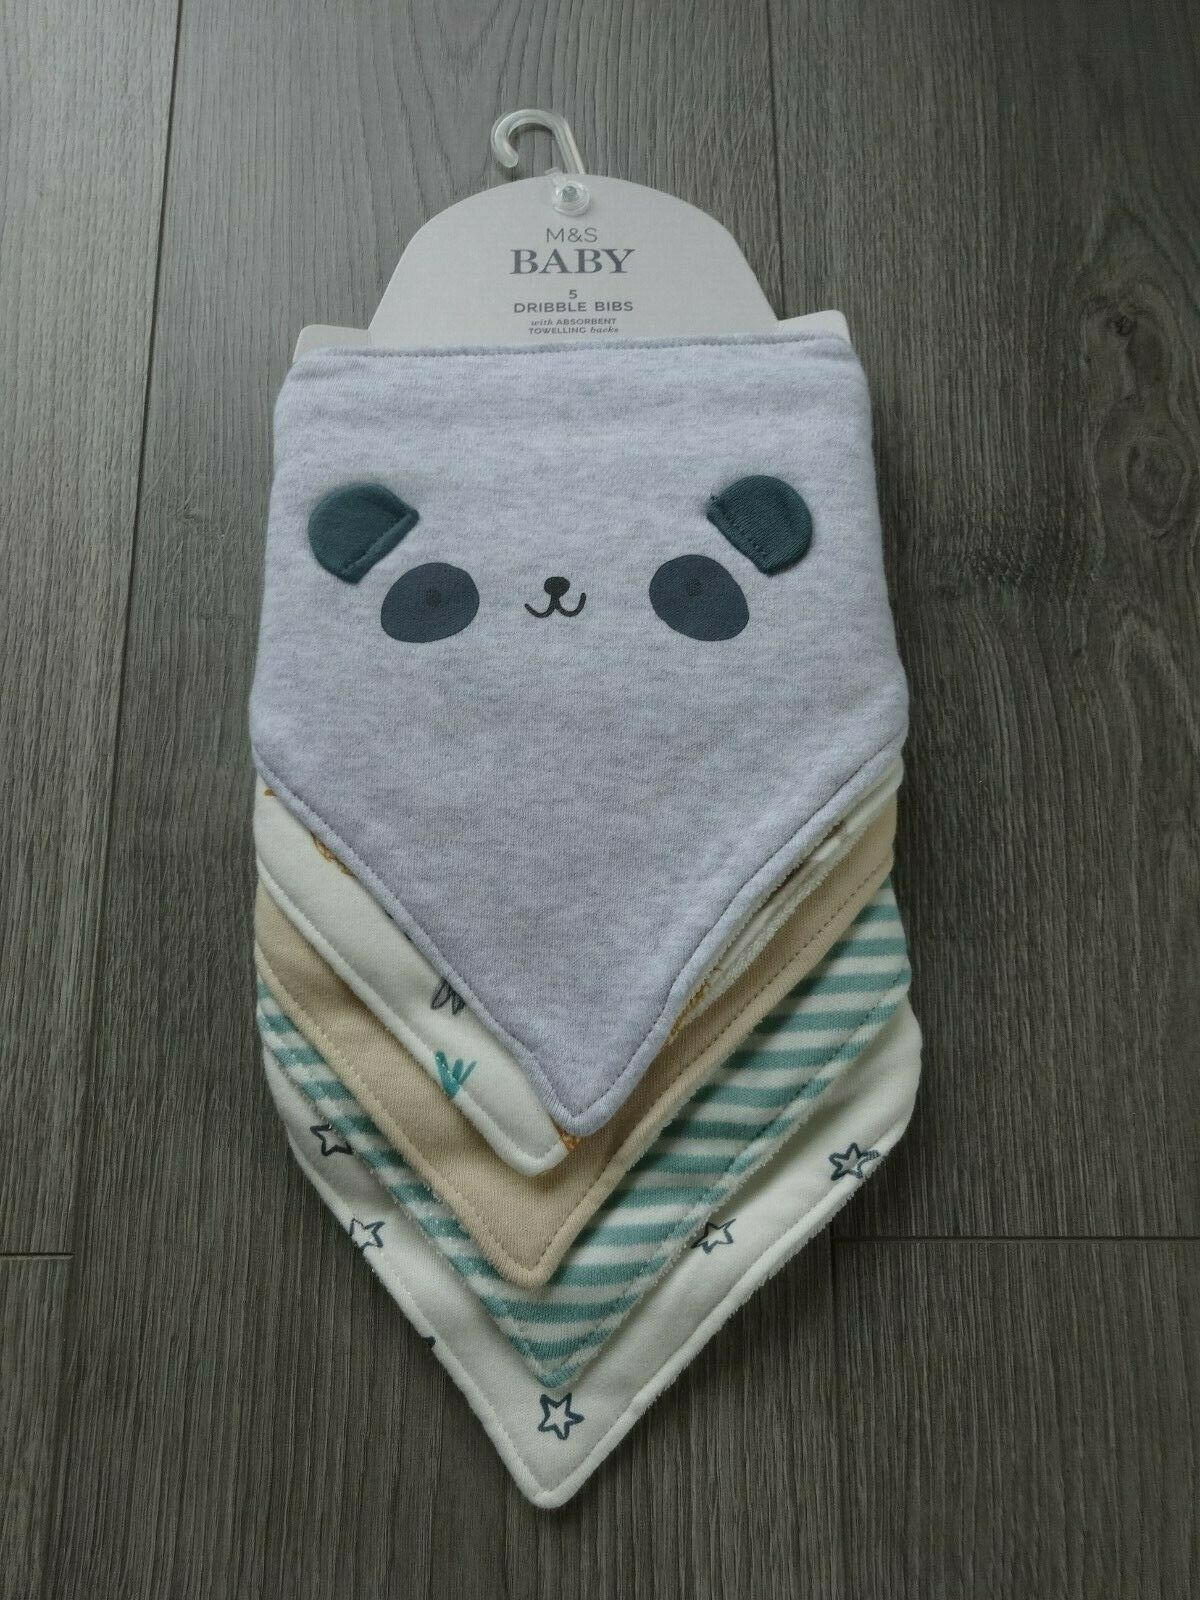 M&S 5 PACK MARKS & SPENCER BABY ORGANIC COTTON GREY MULTI MIX DRIBBLE BIBS